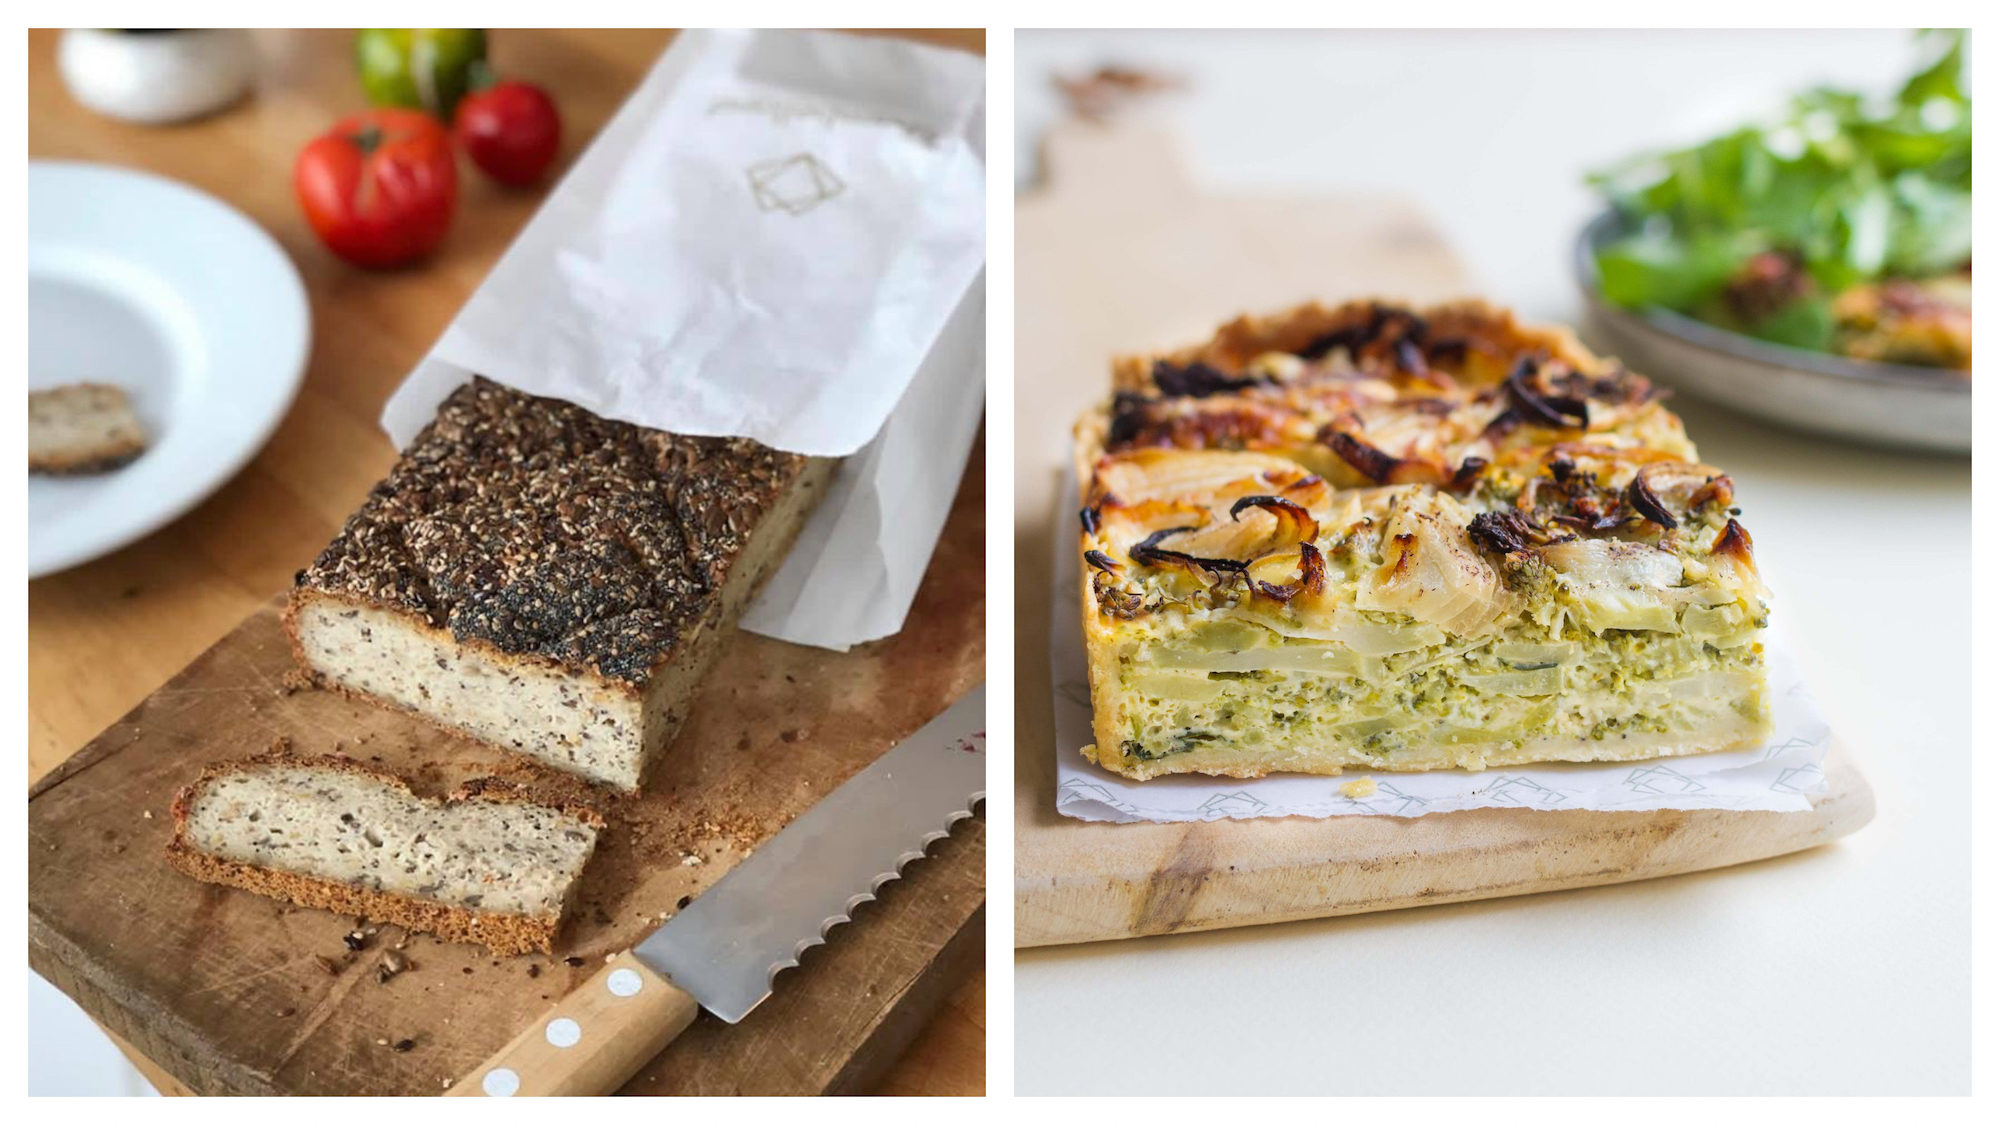 One of our favorite go-to spots in Paris for gluten-free bread and pastries is the Chambelland bakery in the 11th district, for its signature seeded breaded (left) and delicious gluten-free veggie quiche (right).